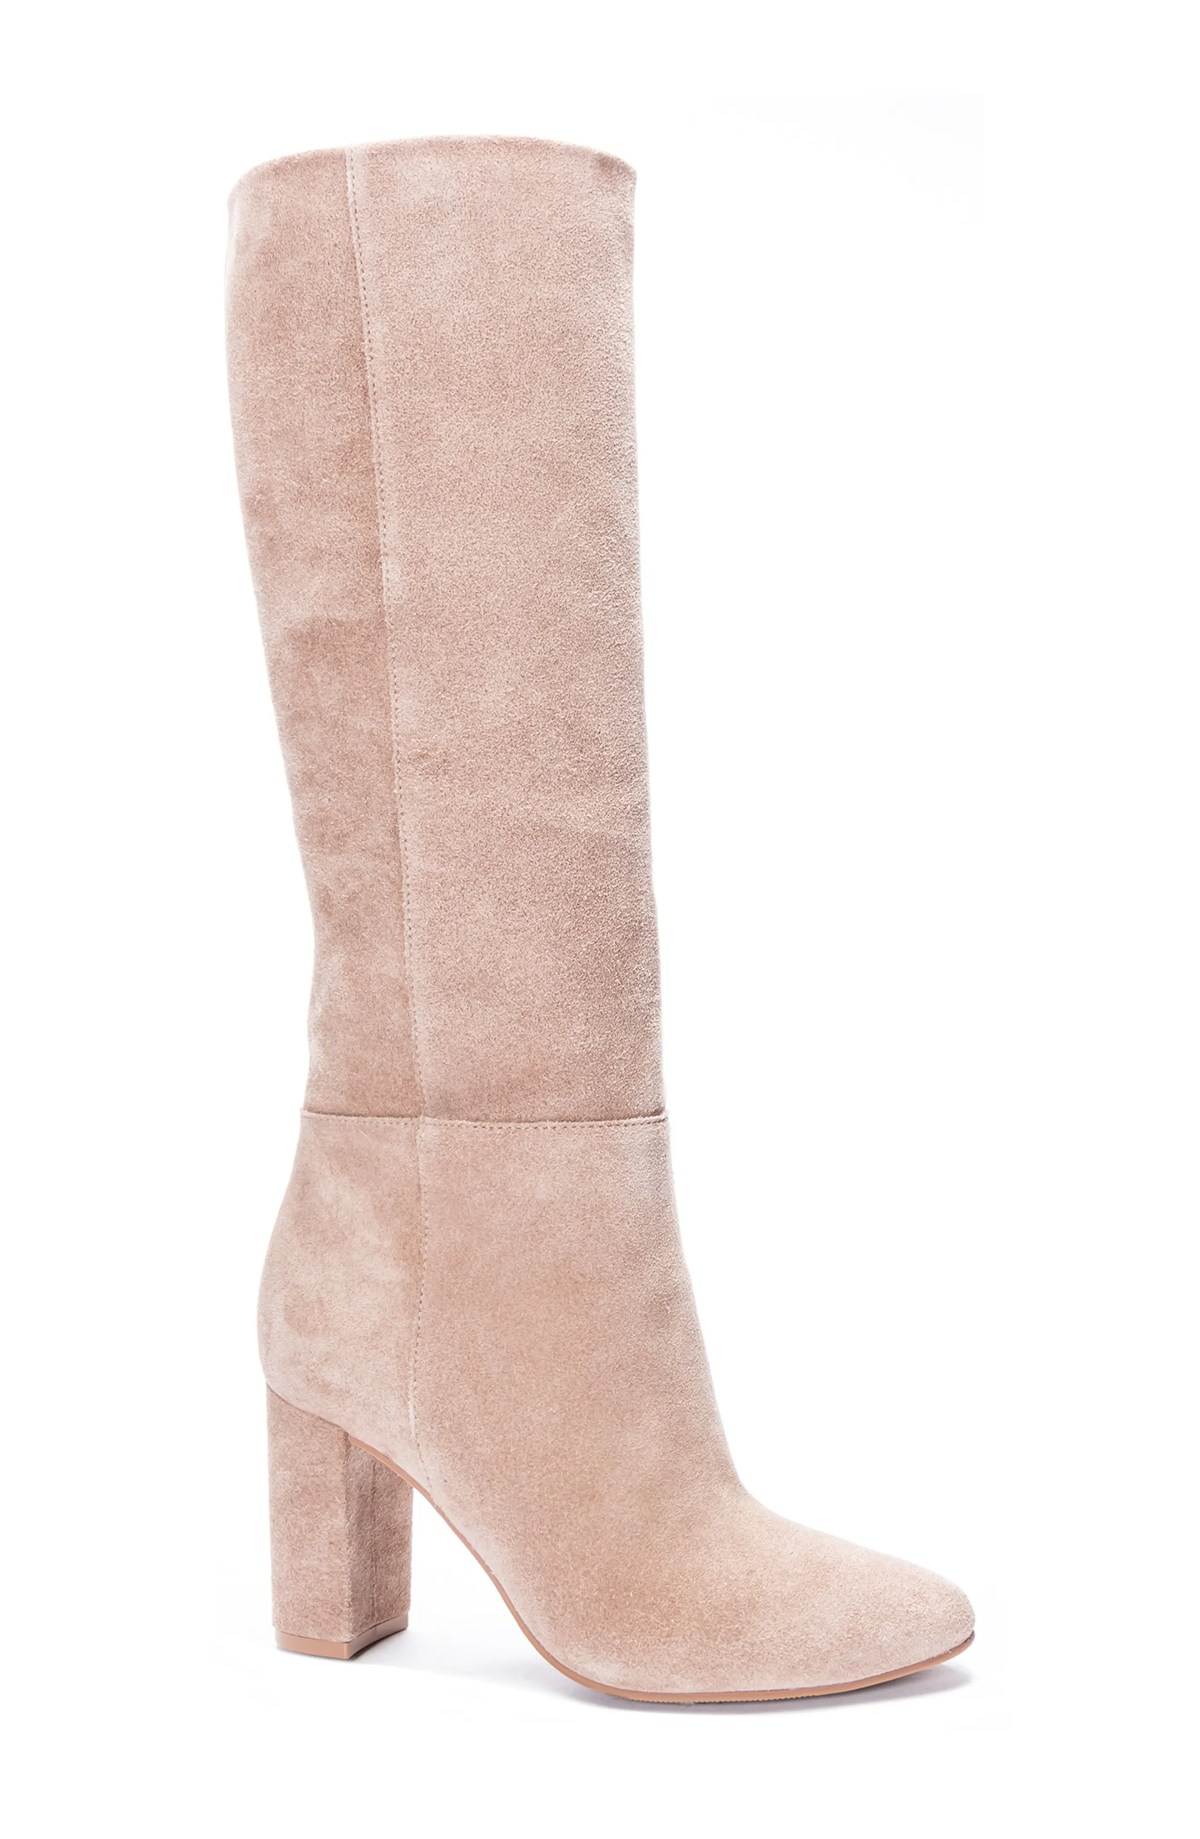 CHINESE LAUNDRY Krafty Knee High Boot, Main, color, MARS TAUPE SUEDE